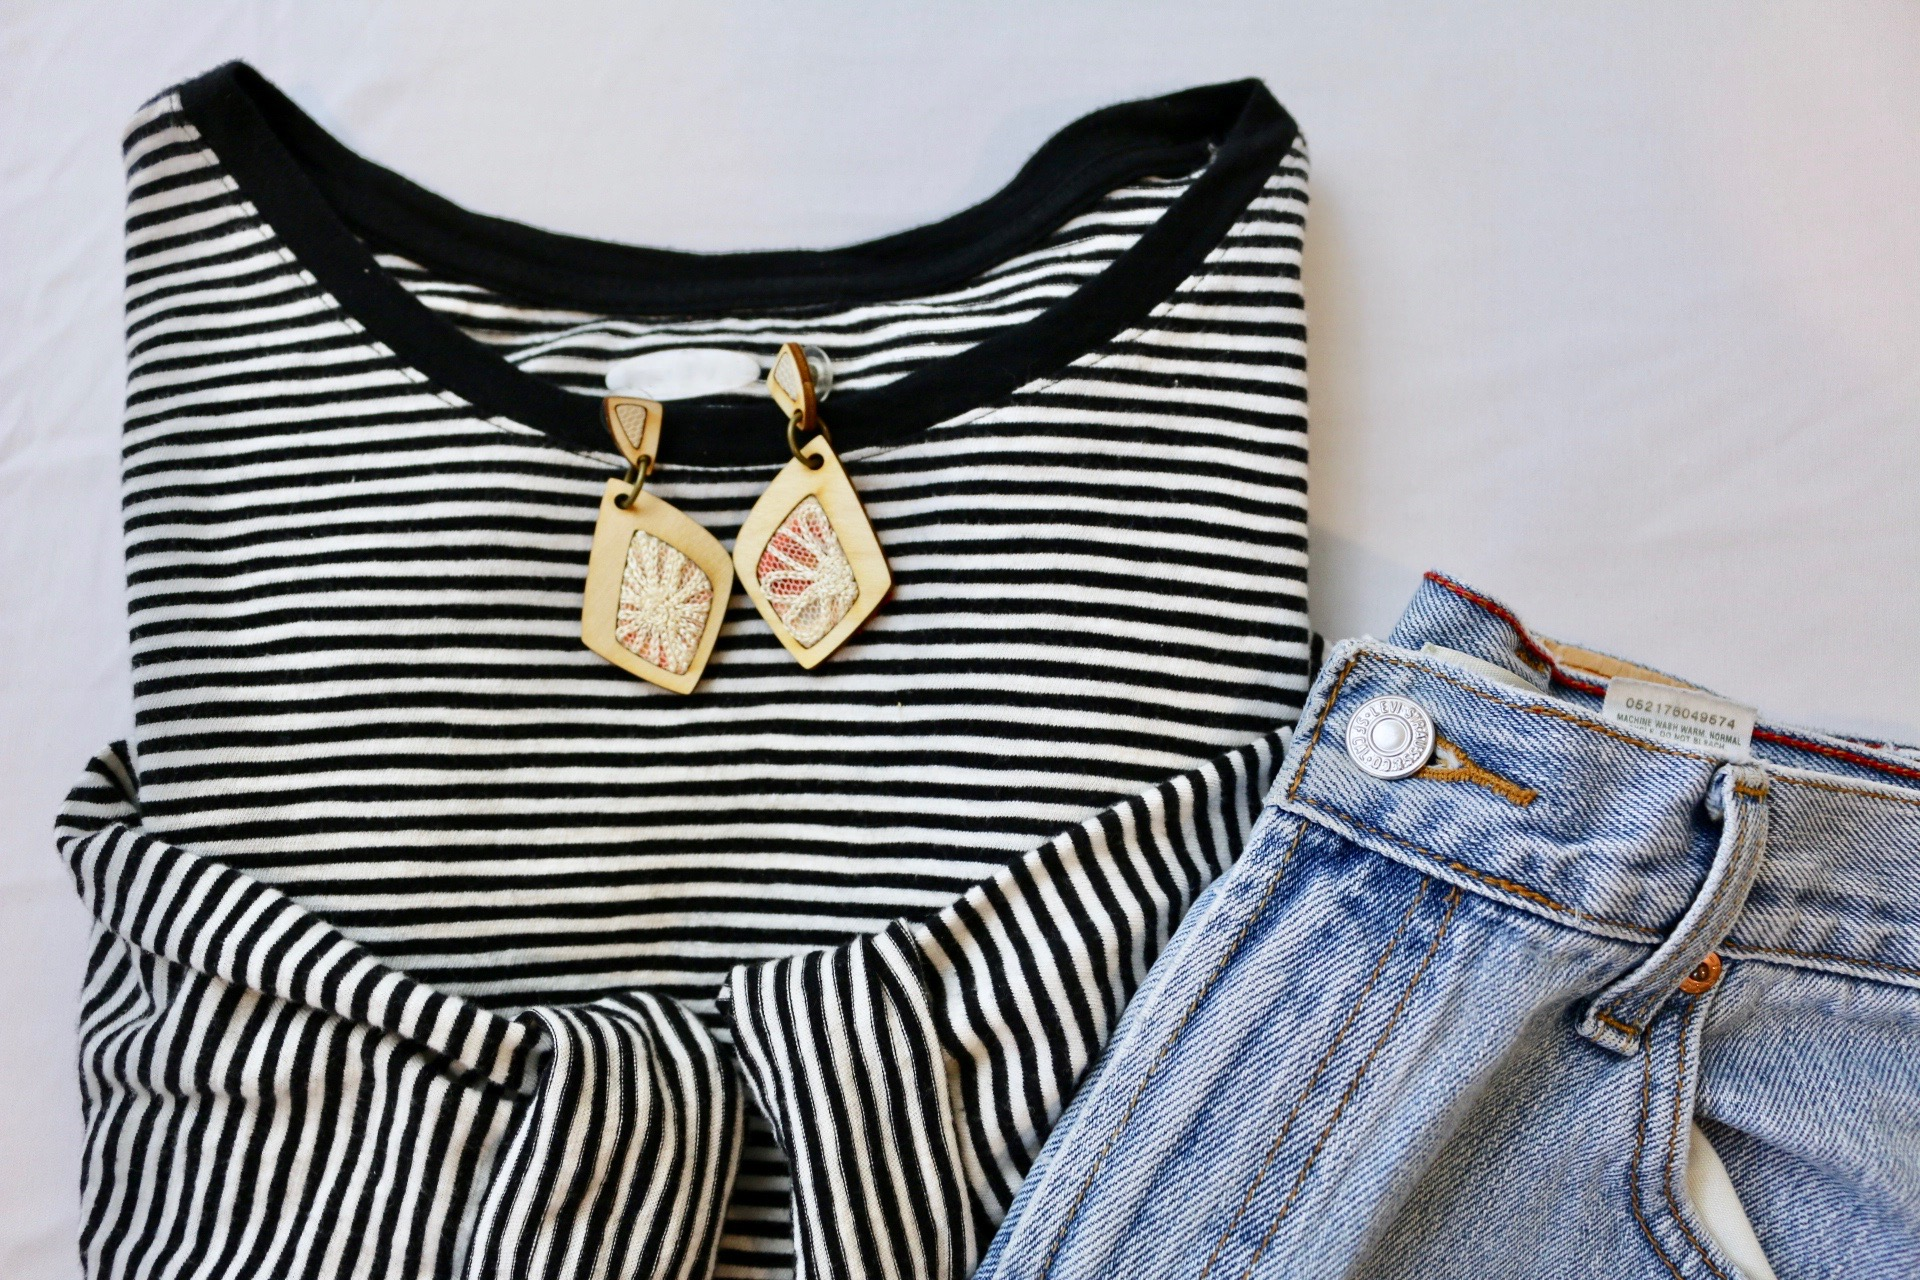 Black and white striped top styled with Regenerous Designs Dangle Earrings and jeans.